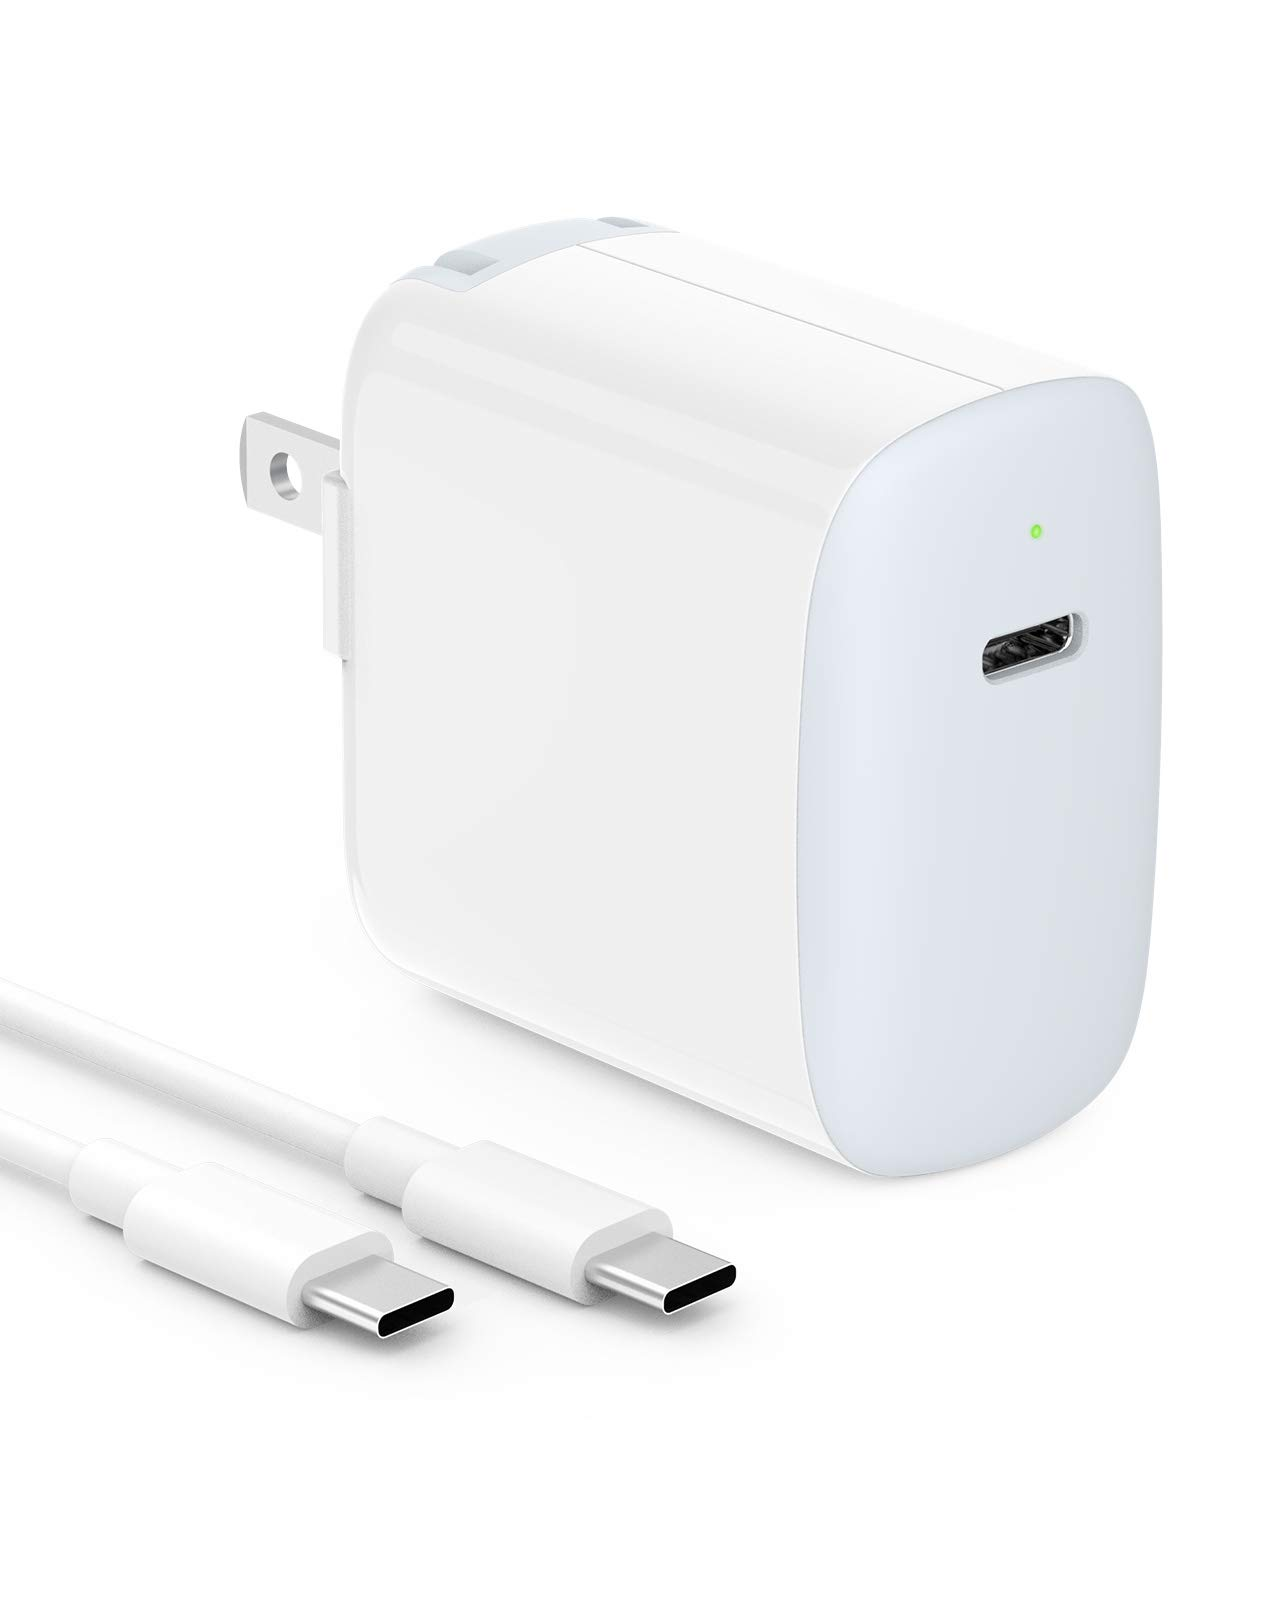 18W USB C Fast Charger Compatible with iPad Pro 12.9, Pro 11 inch 2020/2018, New Air 4 10.5, Google Pixel 5 4 3 2 XL 3A 4A 2XL 3XL 4XL Wall Charger, Foldable Plug, LED, 6.6ft USB C to C Charging Cord